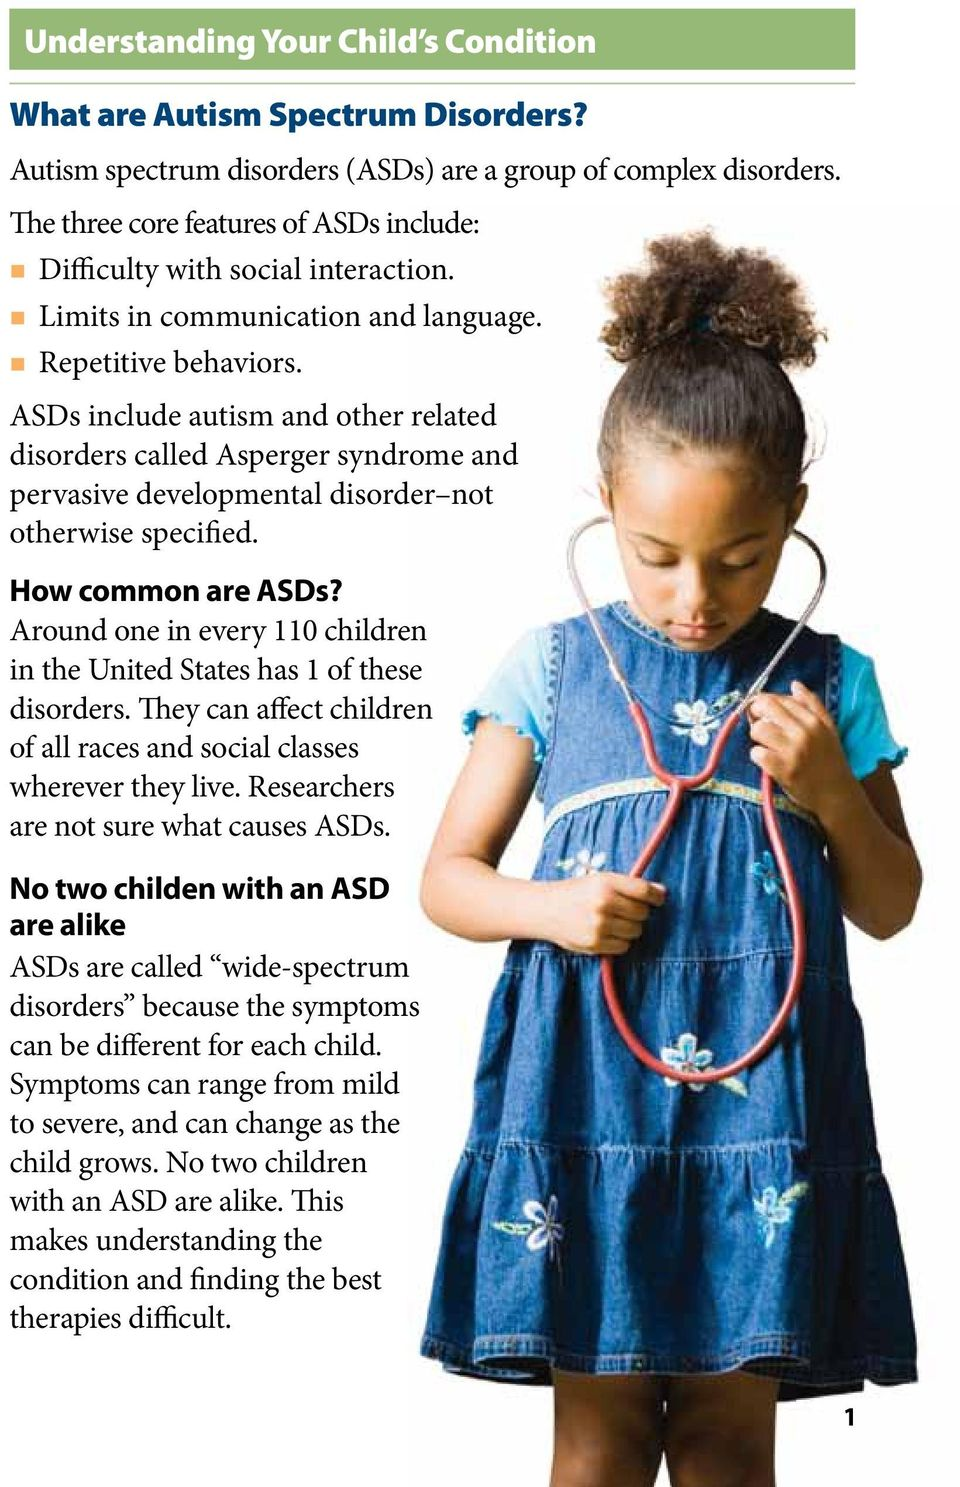 ASDs include autism and other related disorders called Asperger syndrome and pervasive developmental disorder not otherwise specified. How common are ASDs?